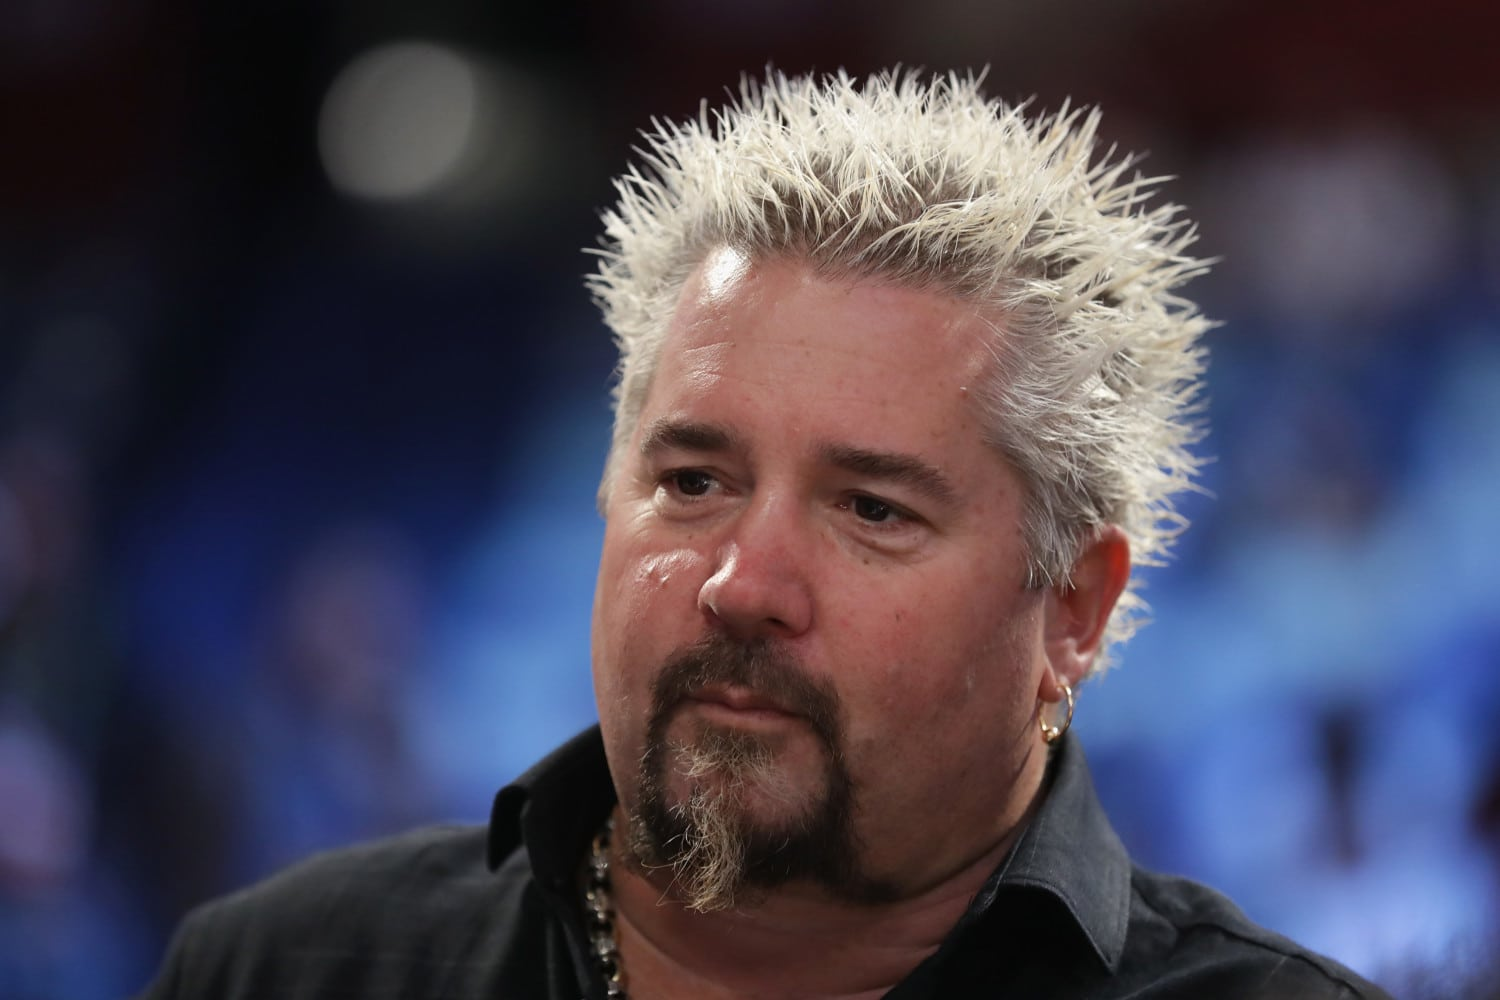 Guy Fieri Facts You Ne...